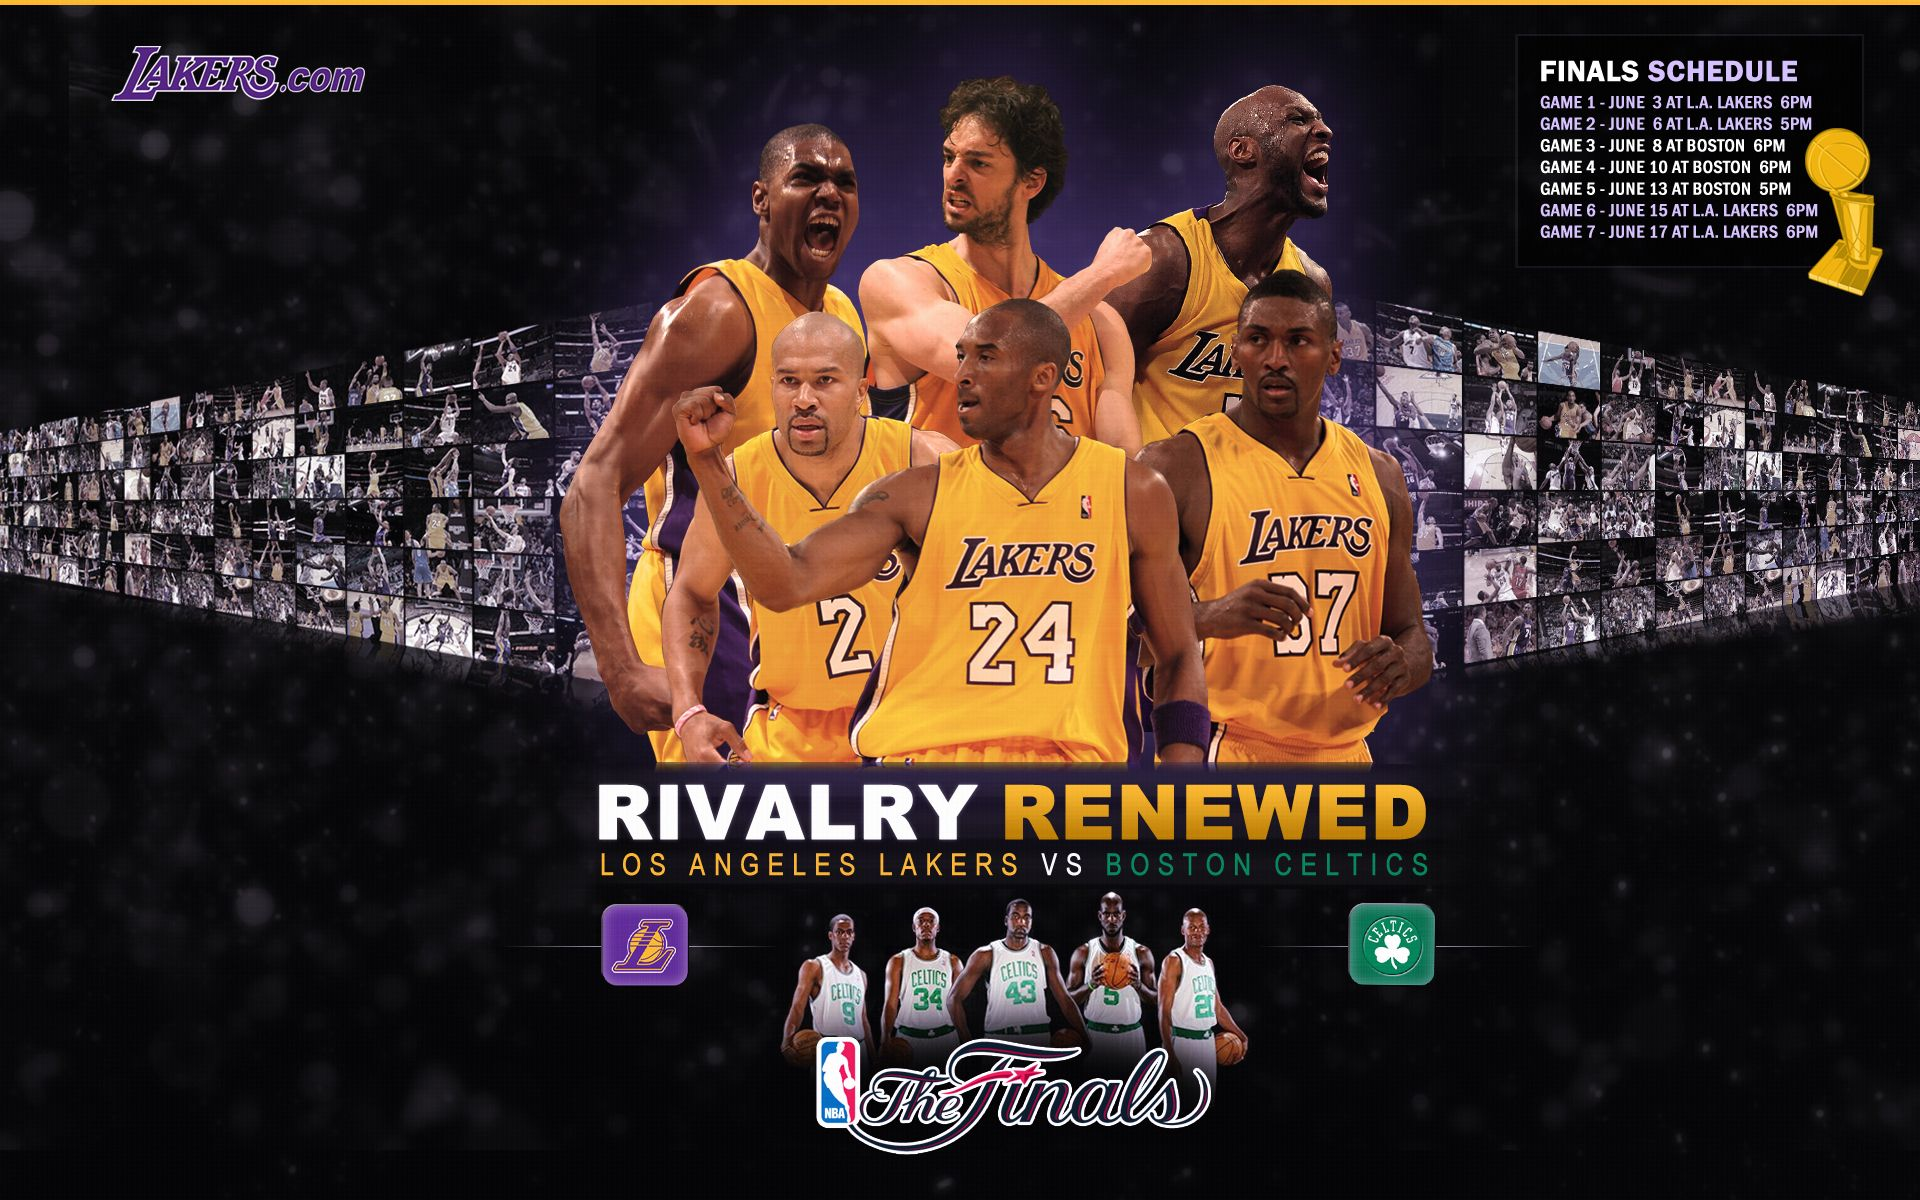 La Lakers New Wallpaper Live Wallpaper Hd